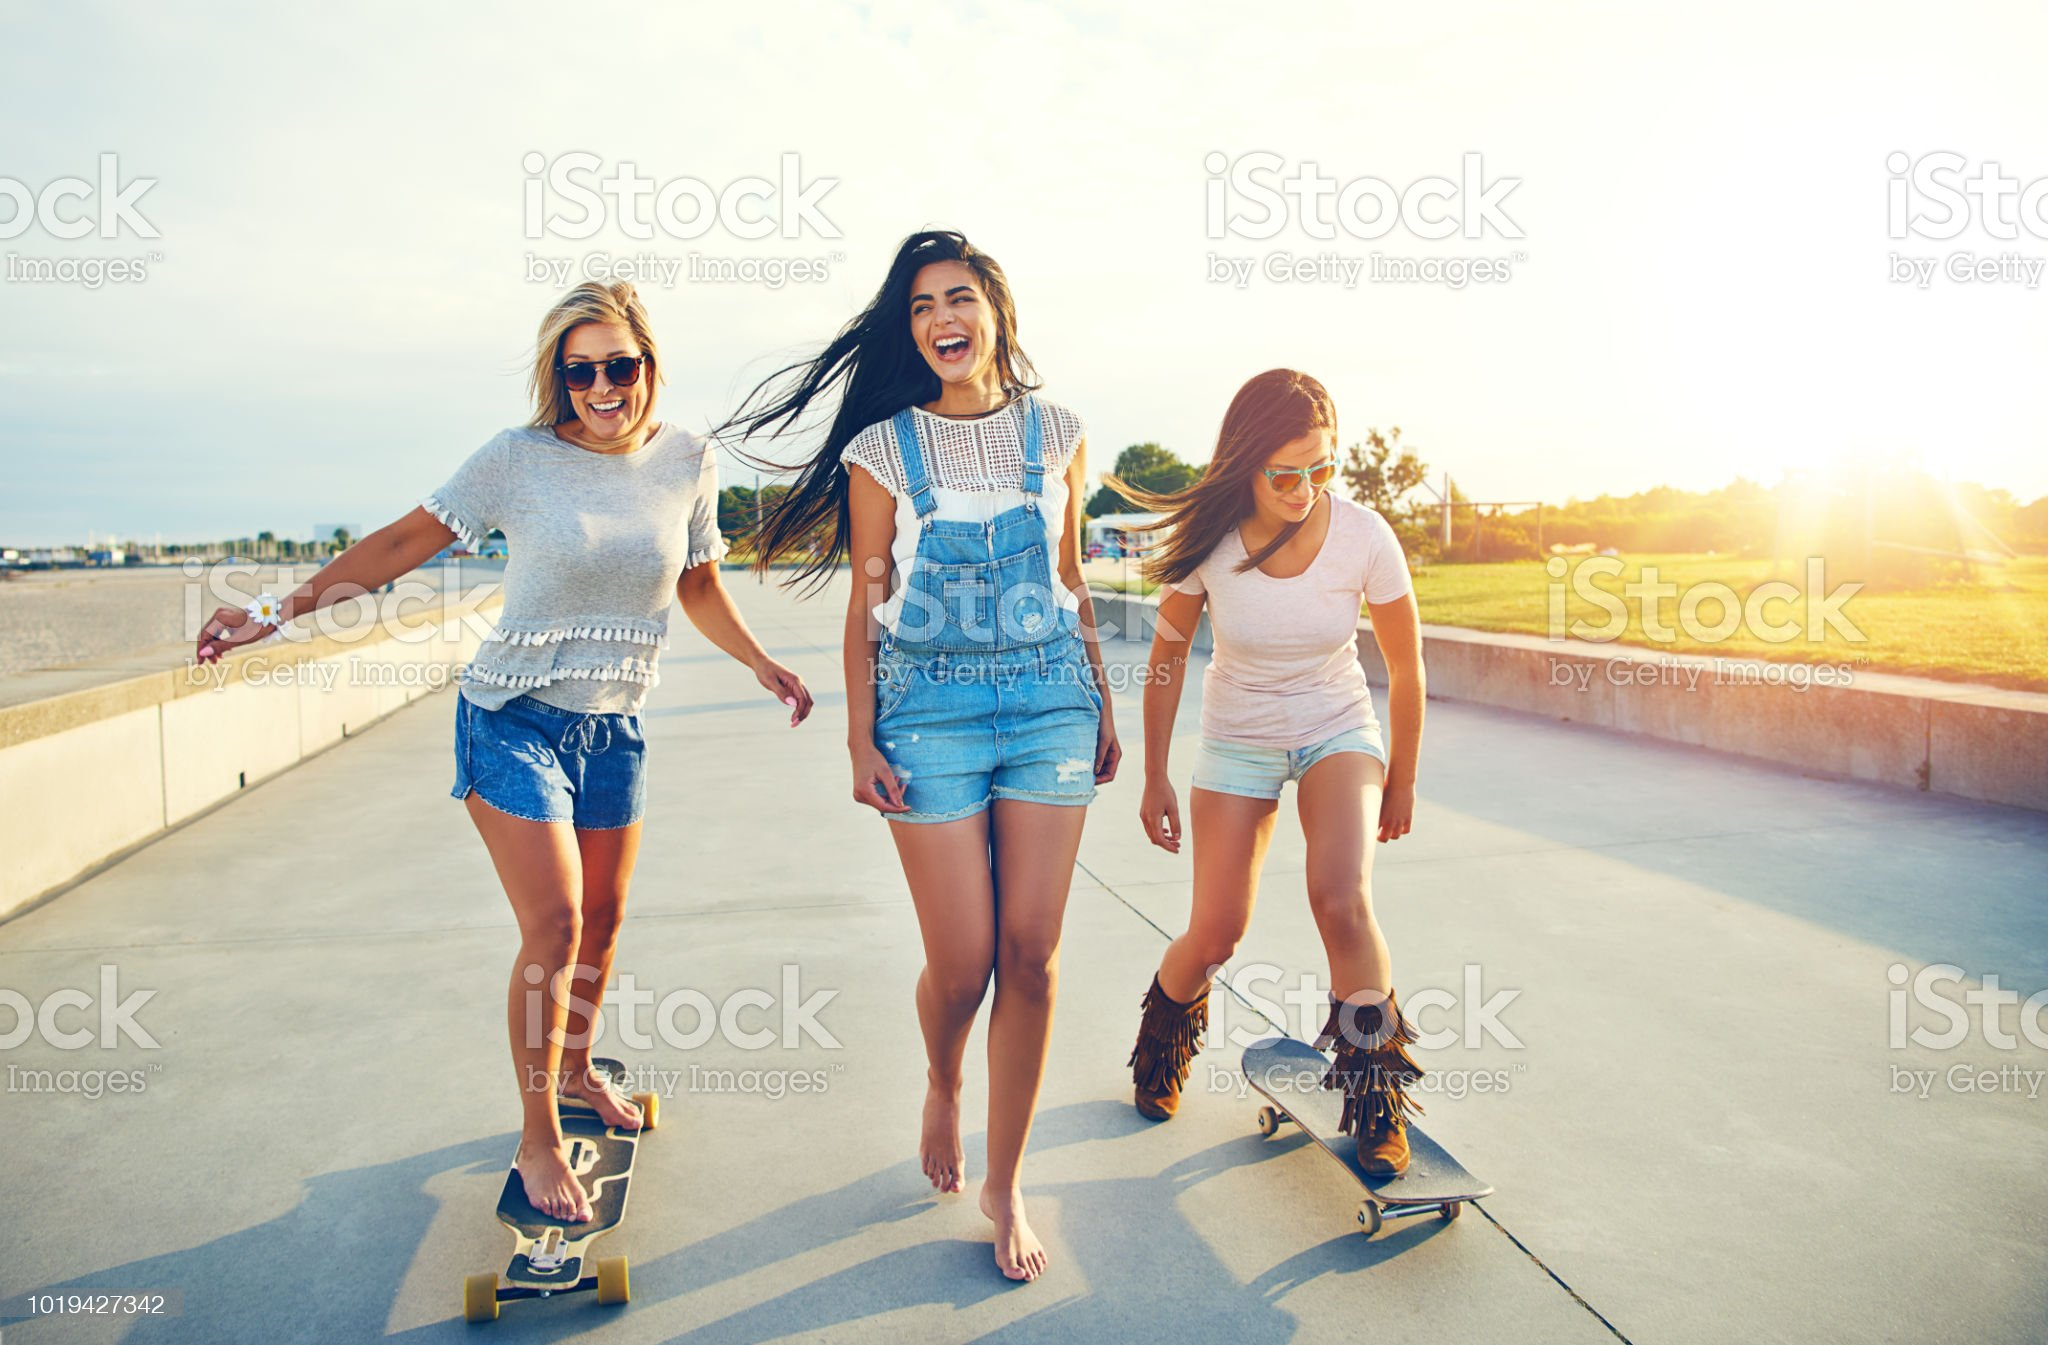 https://media.istockphoto.com/photos/three-active-young-woman-on-a-day-at-the-seaside-picture-id1019427342?s=2048x2048